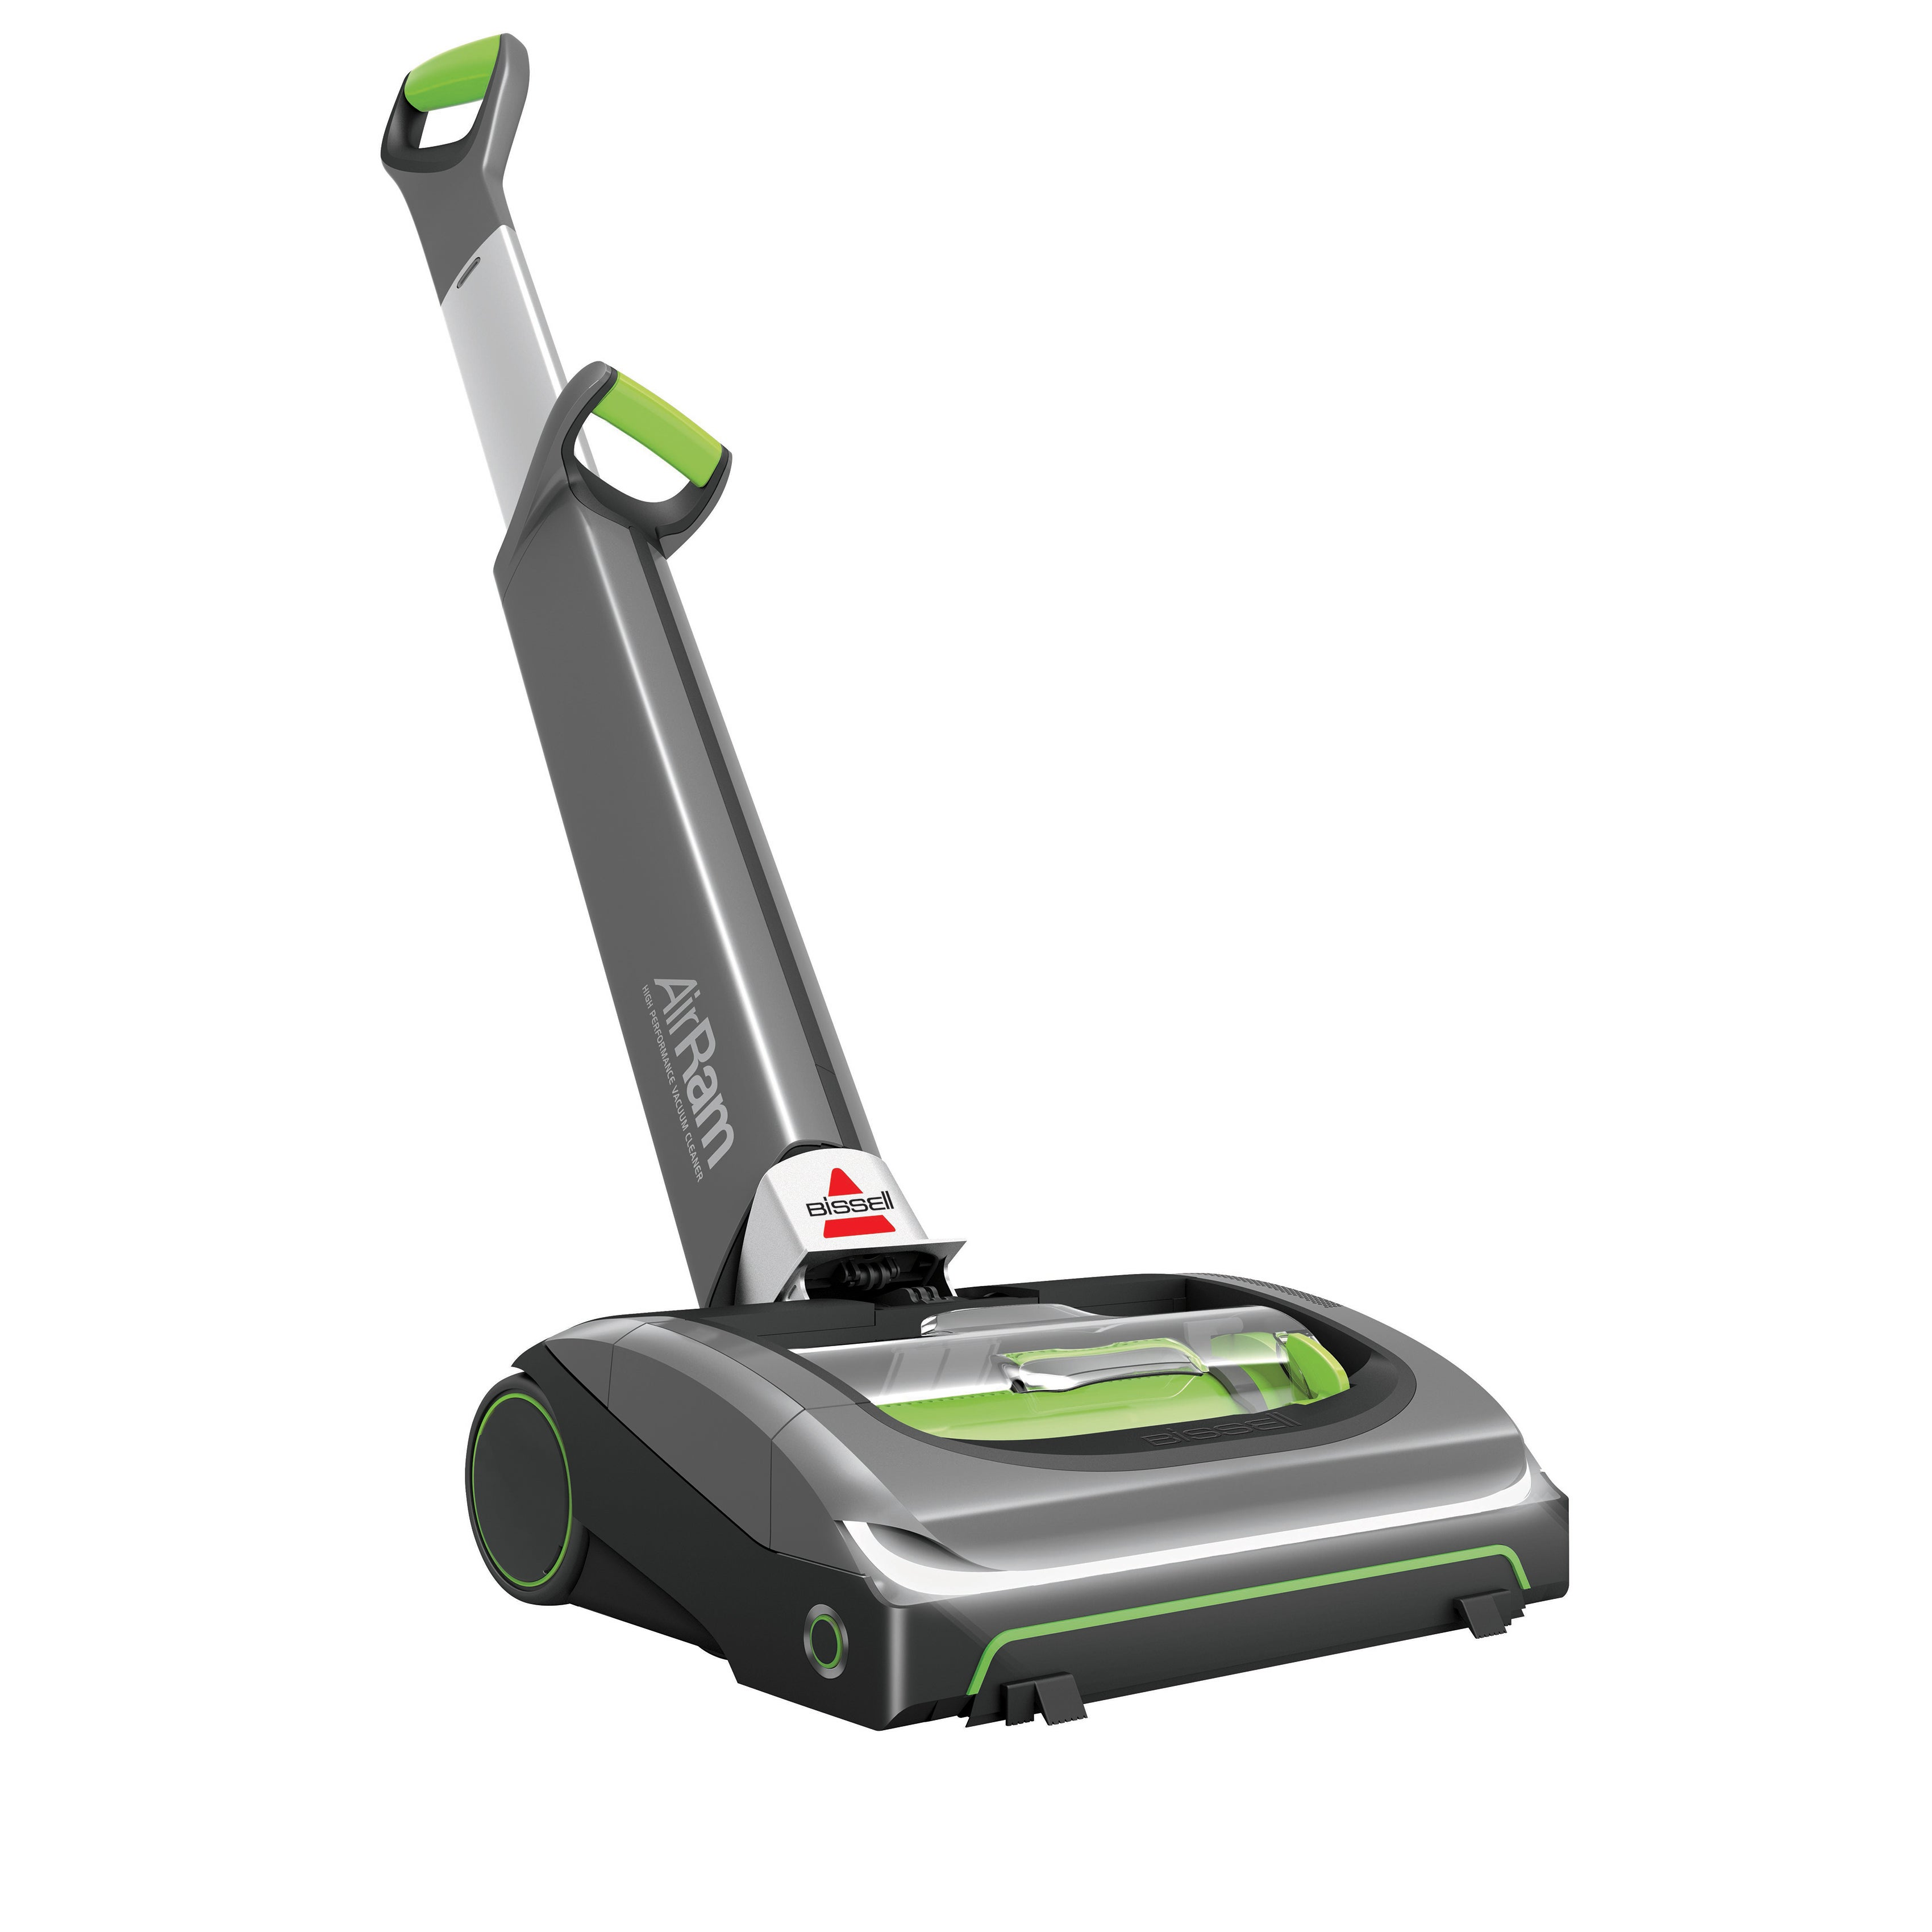 Bissell 1984 AirRam Cordless Vacuum (Cordless (rechargeab...